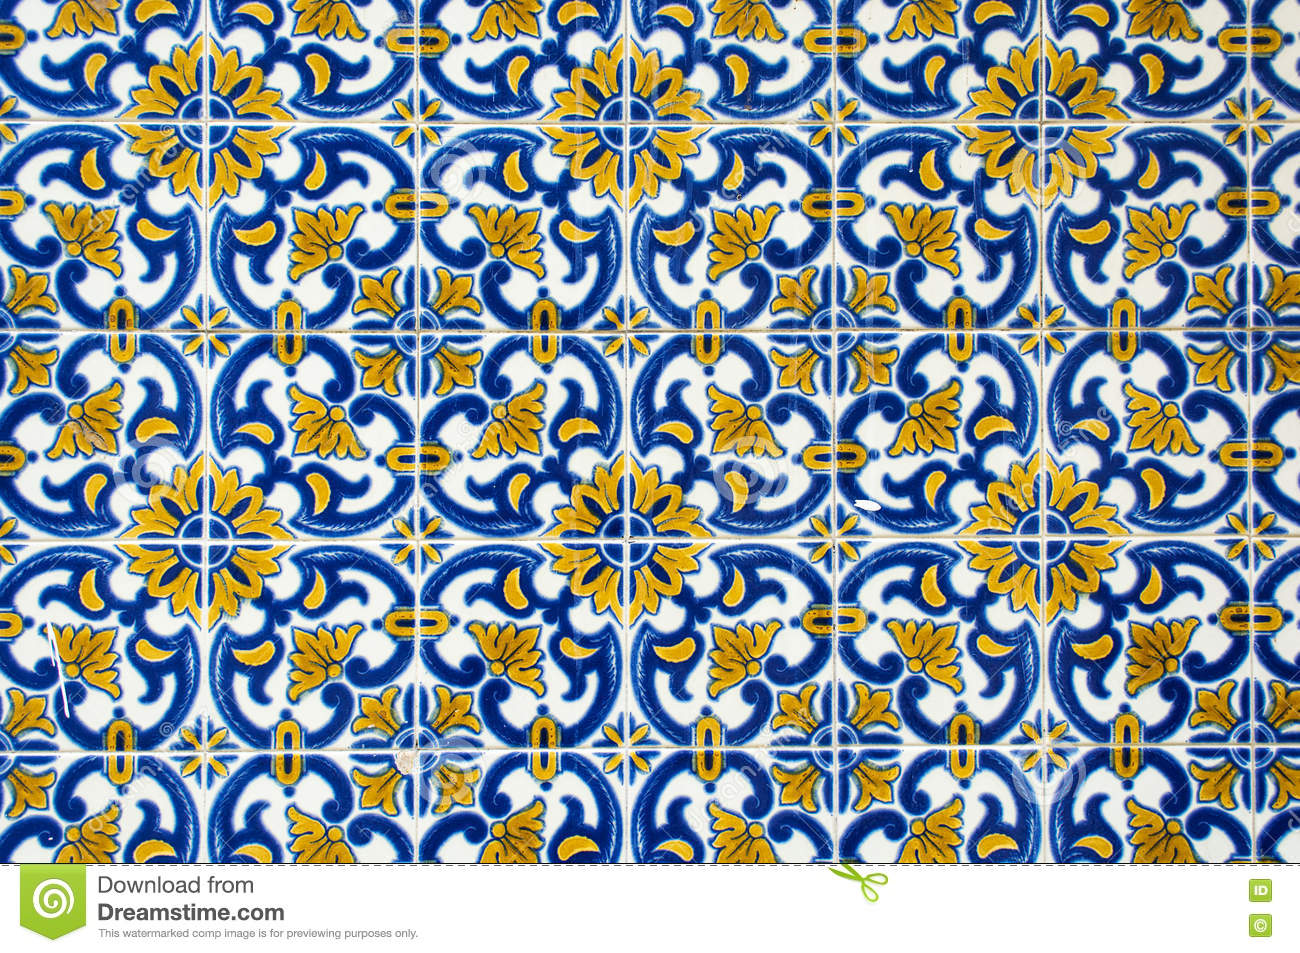 Azulejos Azulejos Royalty Free Stock Image Cartoondealer